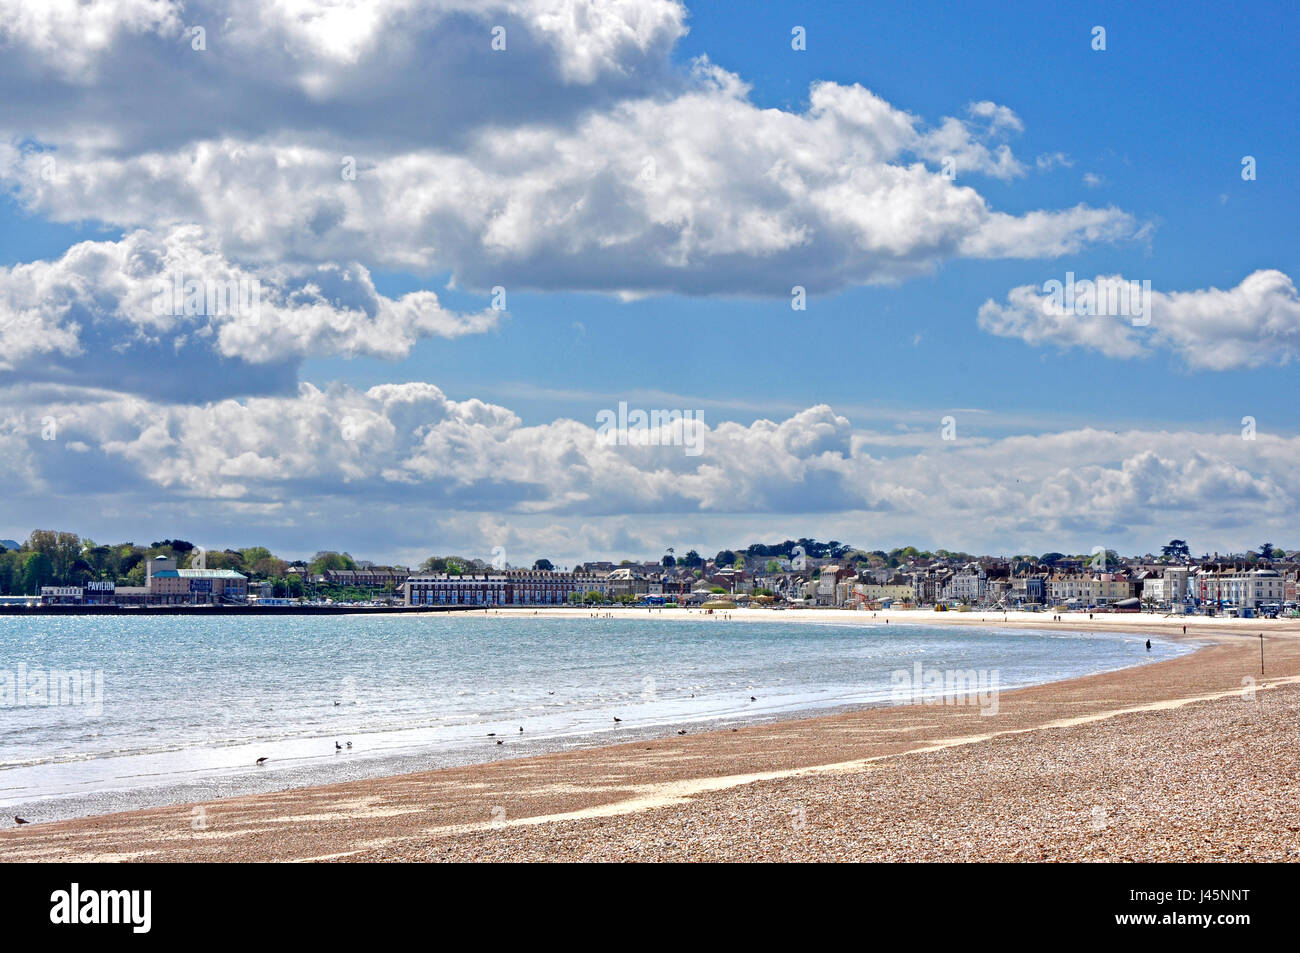 Weymouth beach -Dorset panoramic view  sweeping vista of seafront - attractive town beyond - early summer sunlight - Stock Image